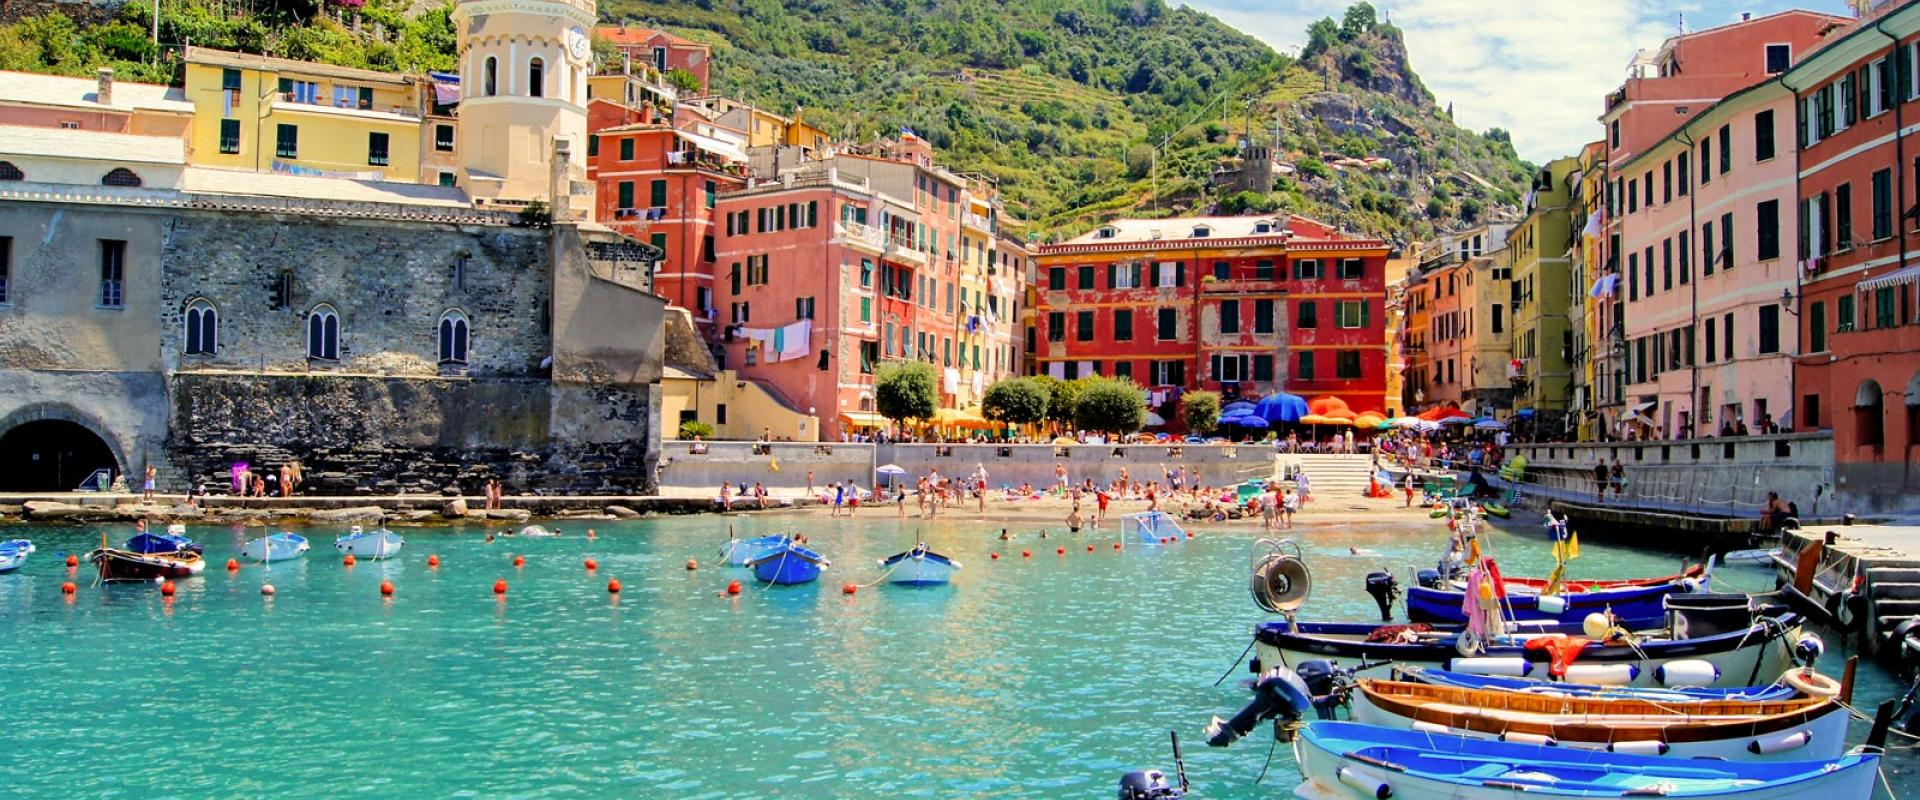 Visit of Vernazza, the enchanting 5 terre